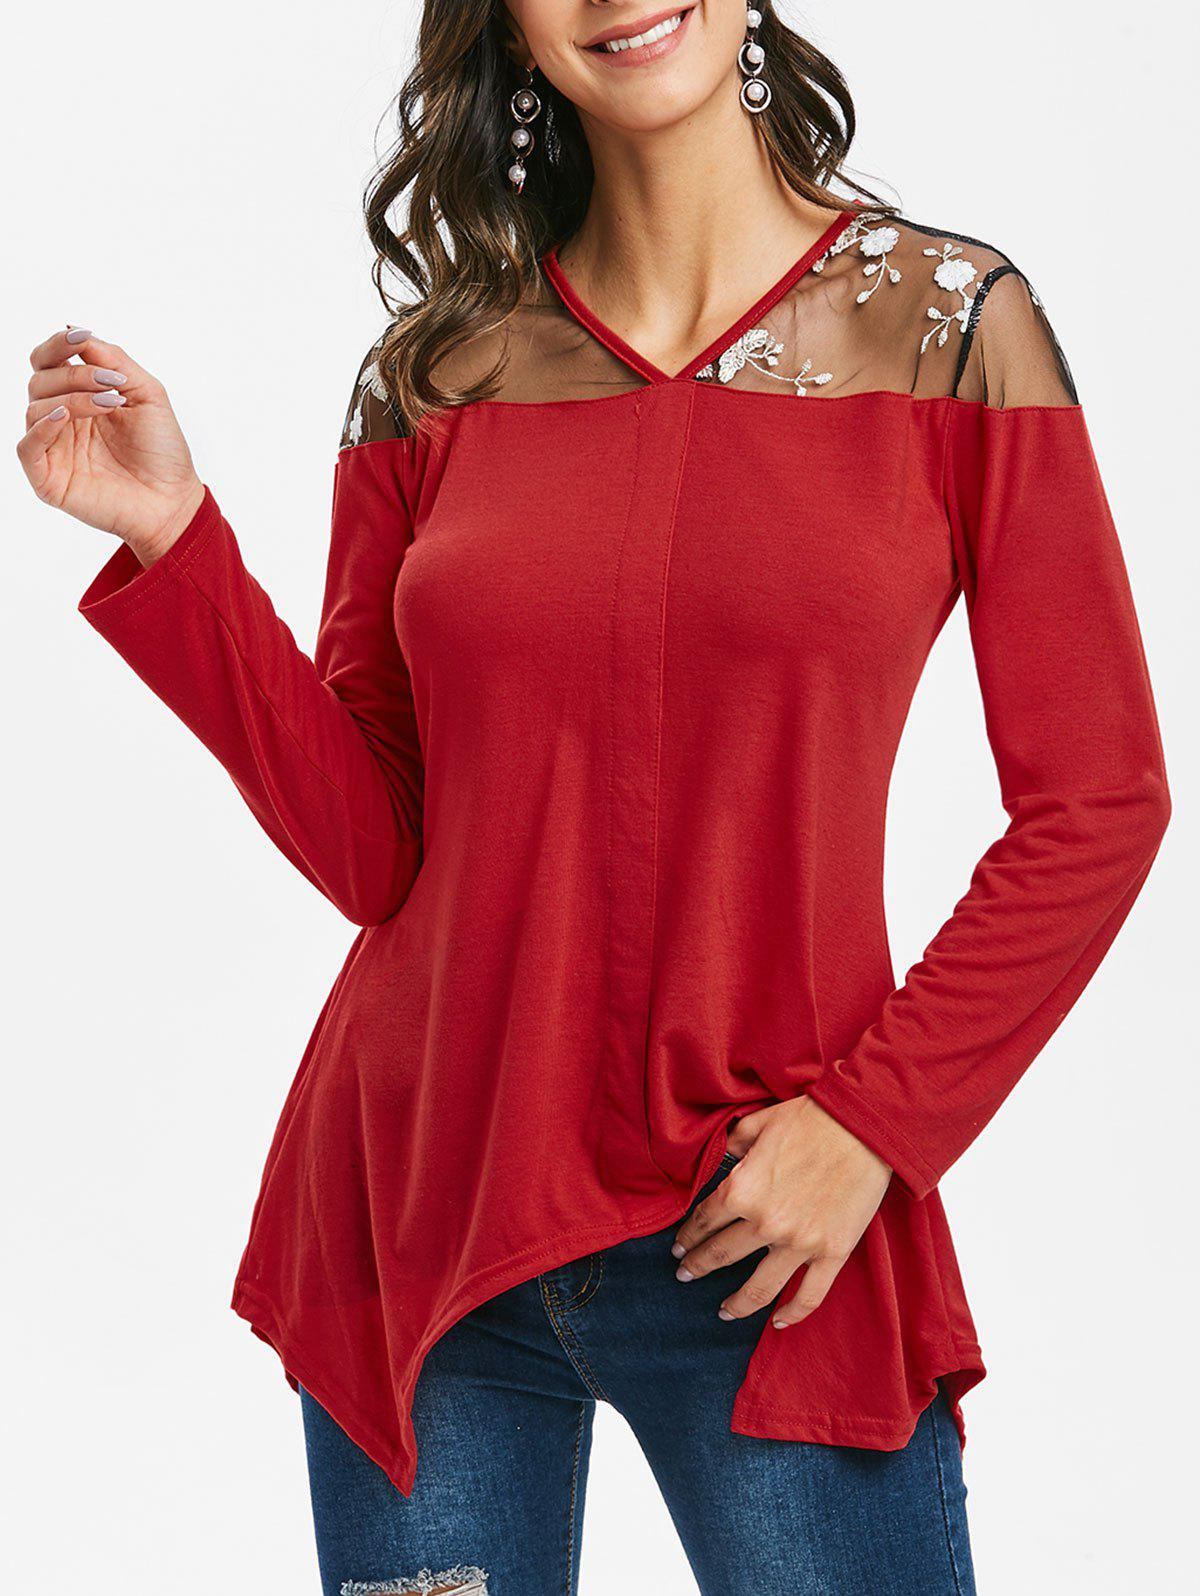 Floral Embroidered Mesh Panel Asymmetric Top - LAVA RED XL